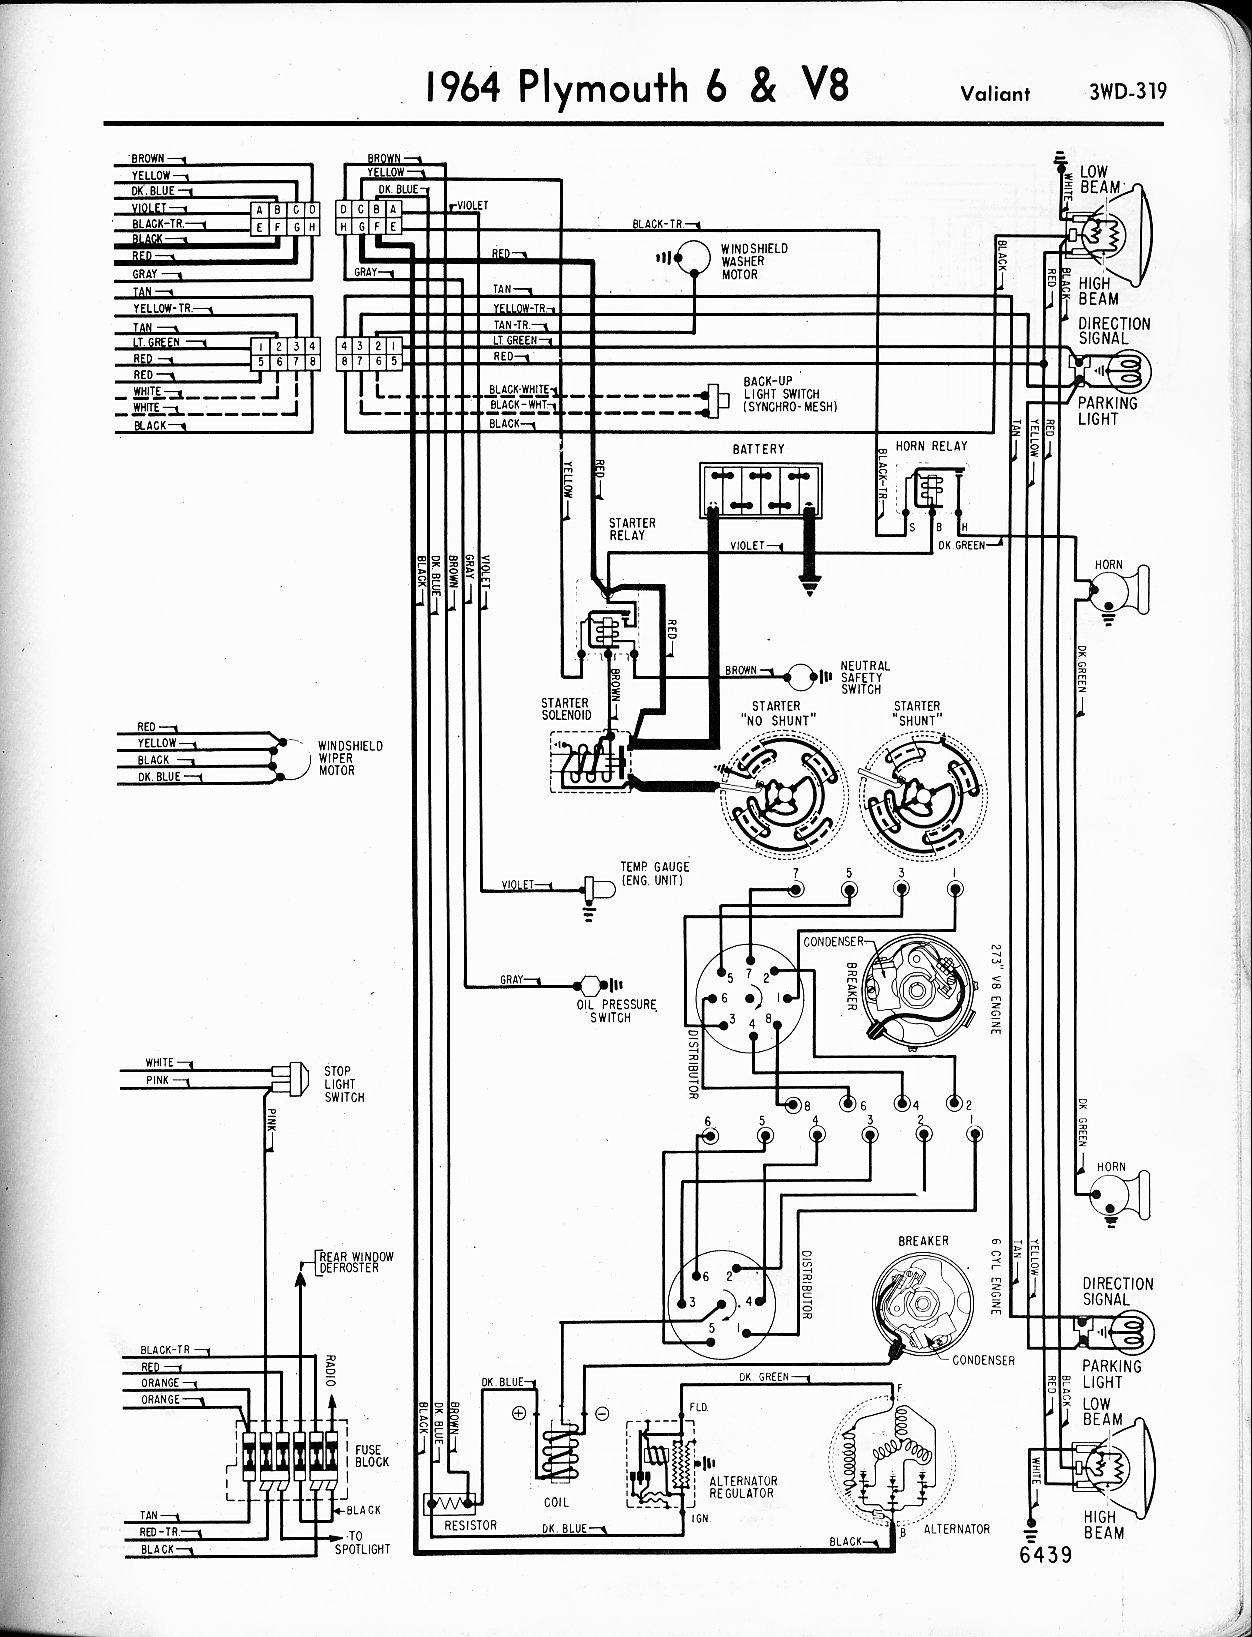 MWire5765 319 1964 plymouth wiring diagram 1964 wiring diagrams instruction 1954 plymouth belvedere wiring diagram at eliteediting.co